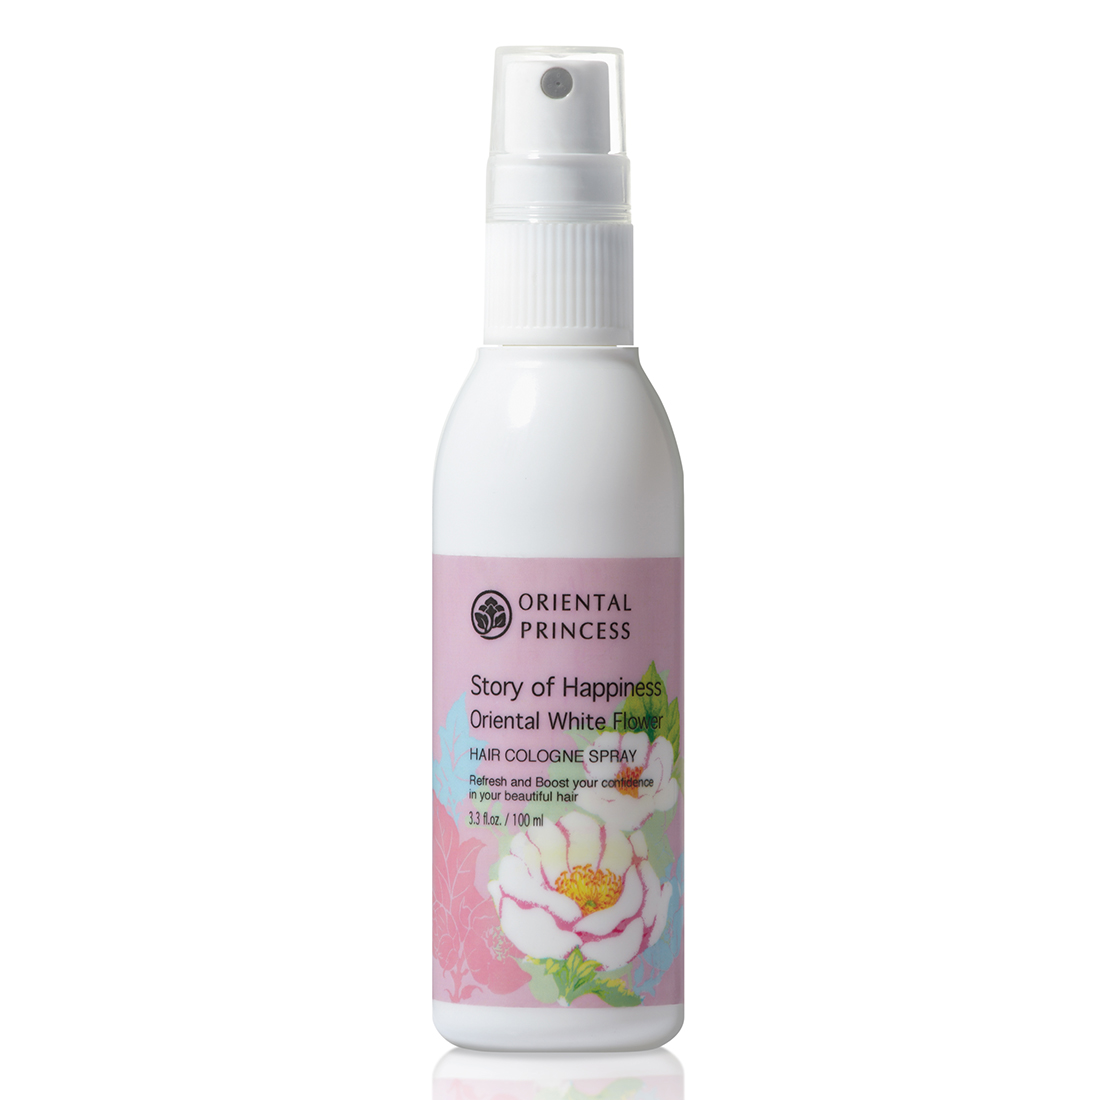 Story Of Happiness Oriental White Flower Hair Cologne Spray